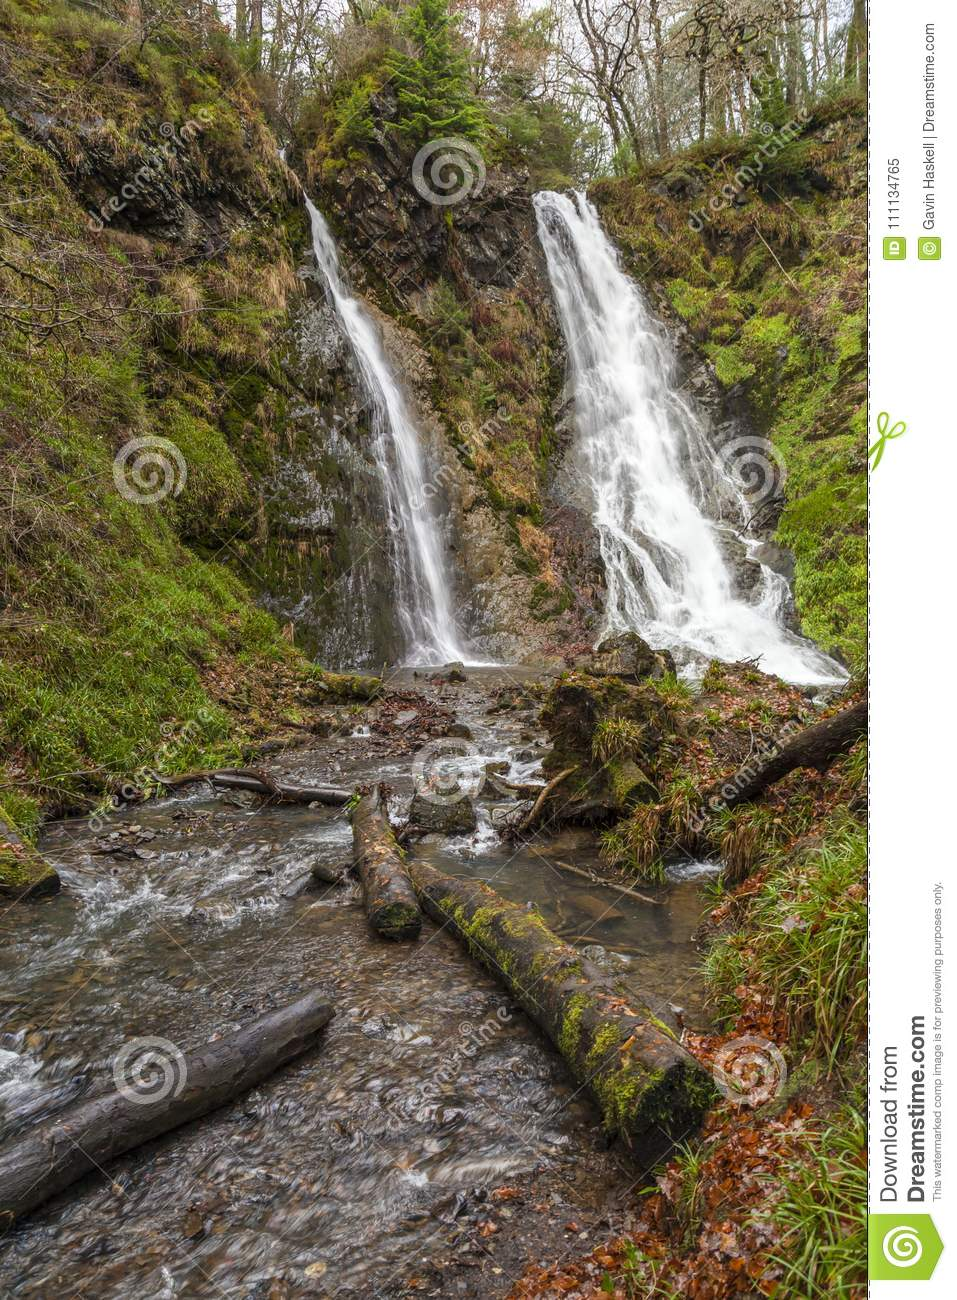 Gwydyr Forest Waterfall stock image  Image of wales - 111134765